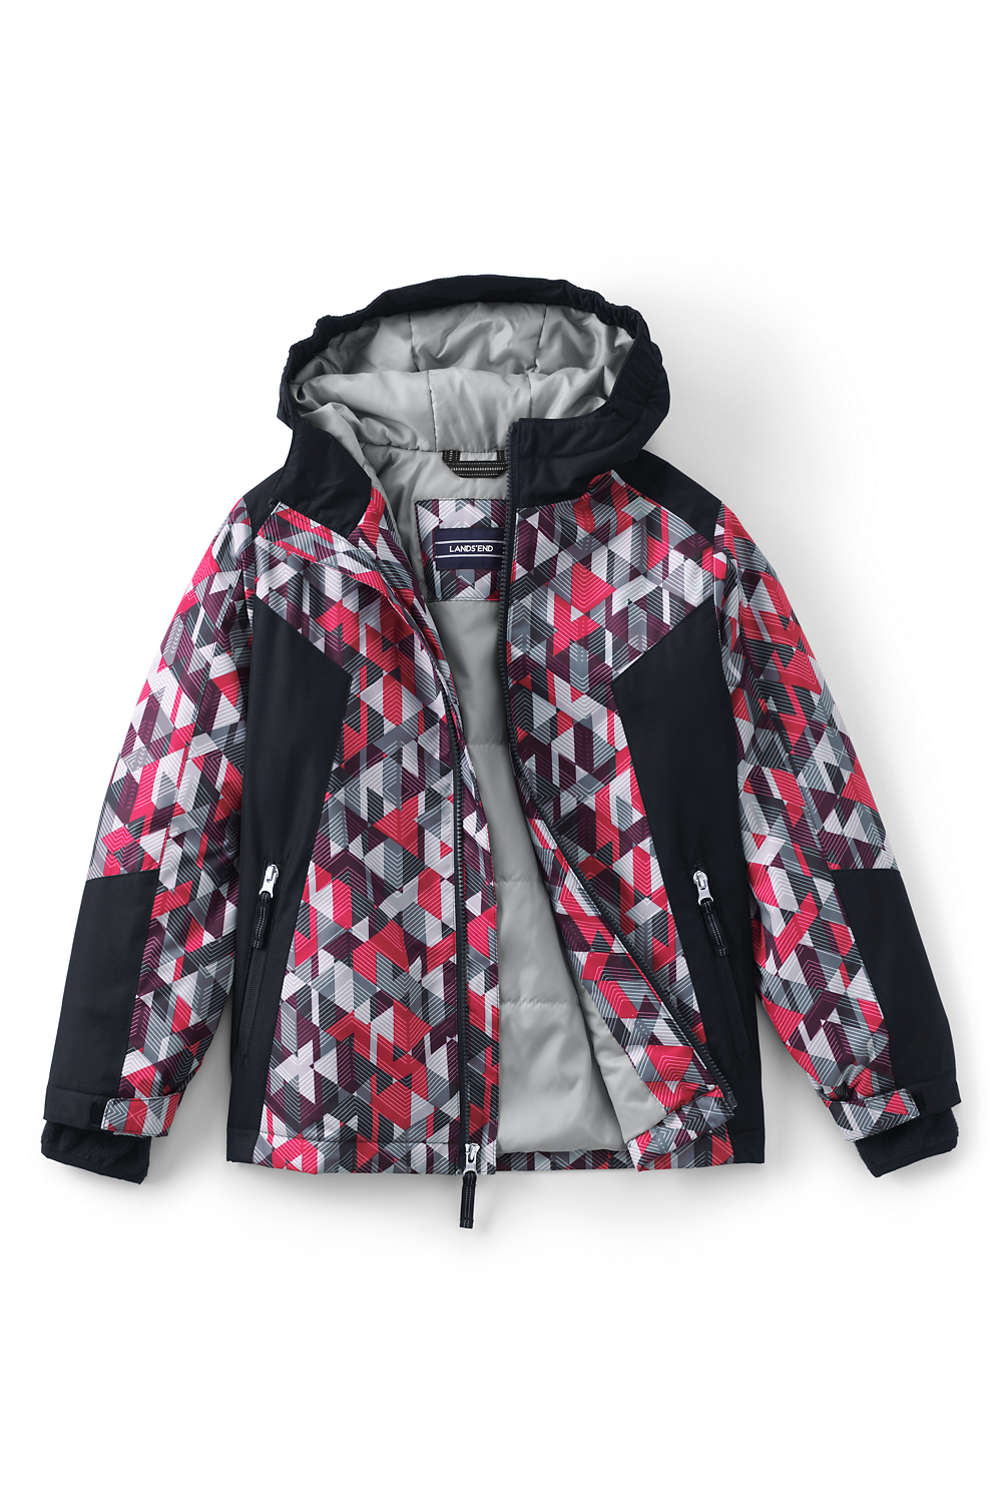 01e5909e78a4 Boys Stormer Winter Jacket from Lands  End